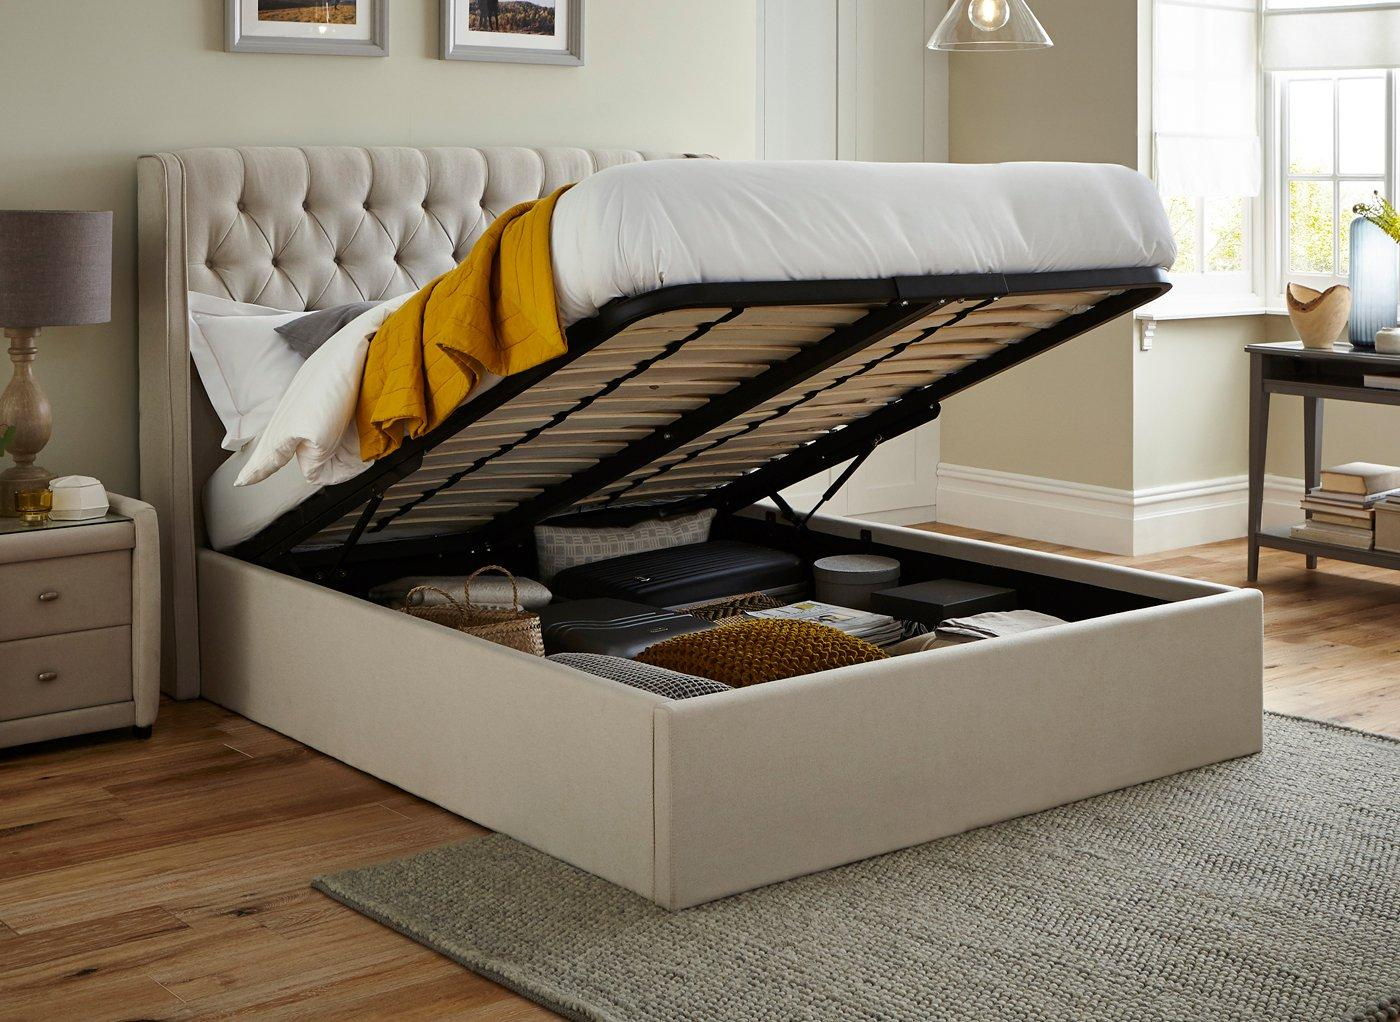 Deacon Upholstered Ottoman Bed Frame 5 0 King Cream Bed Sava